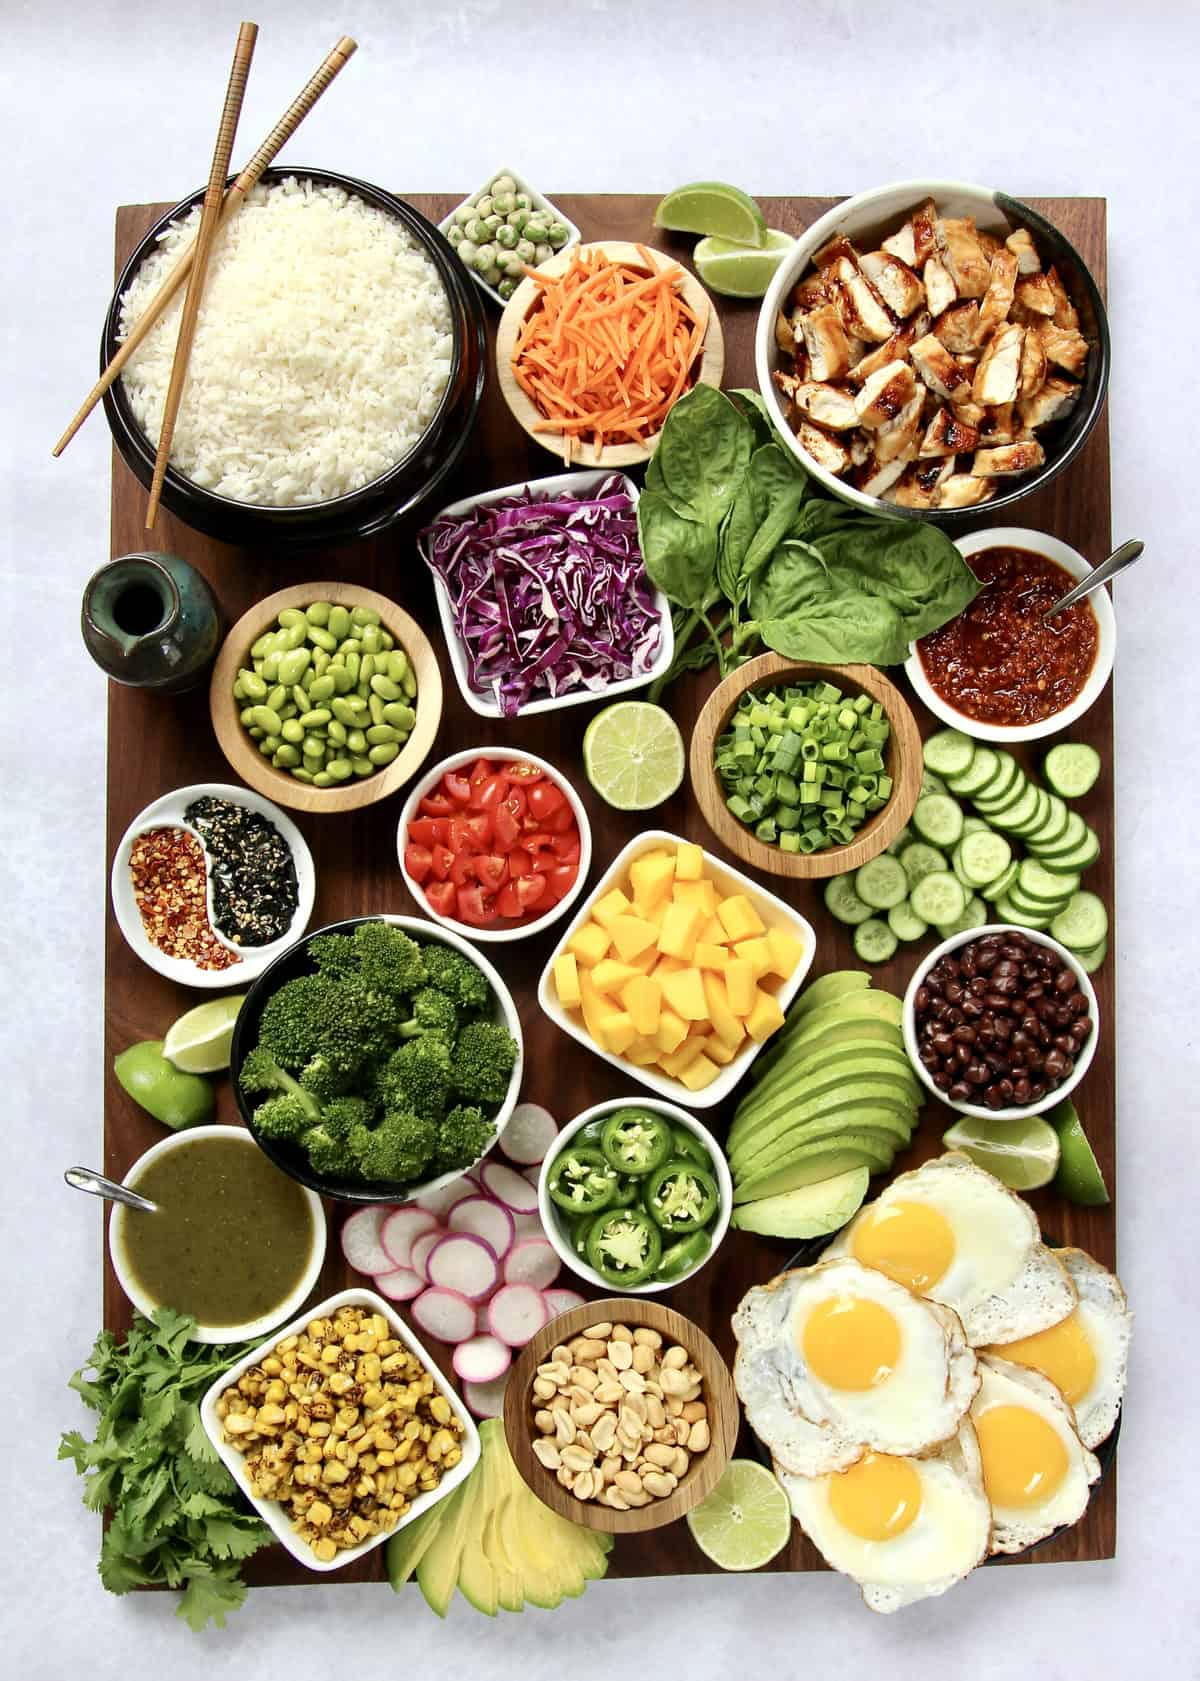 Build-Your-Own Rice Bowl Board by The BakerMama